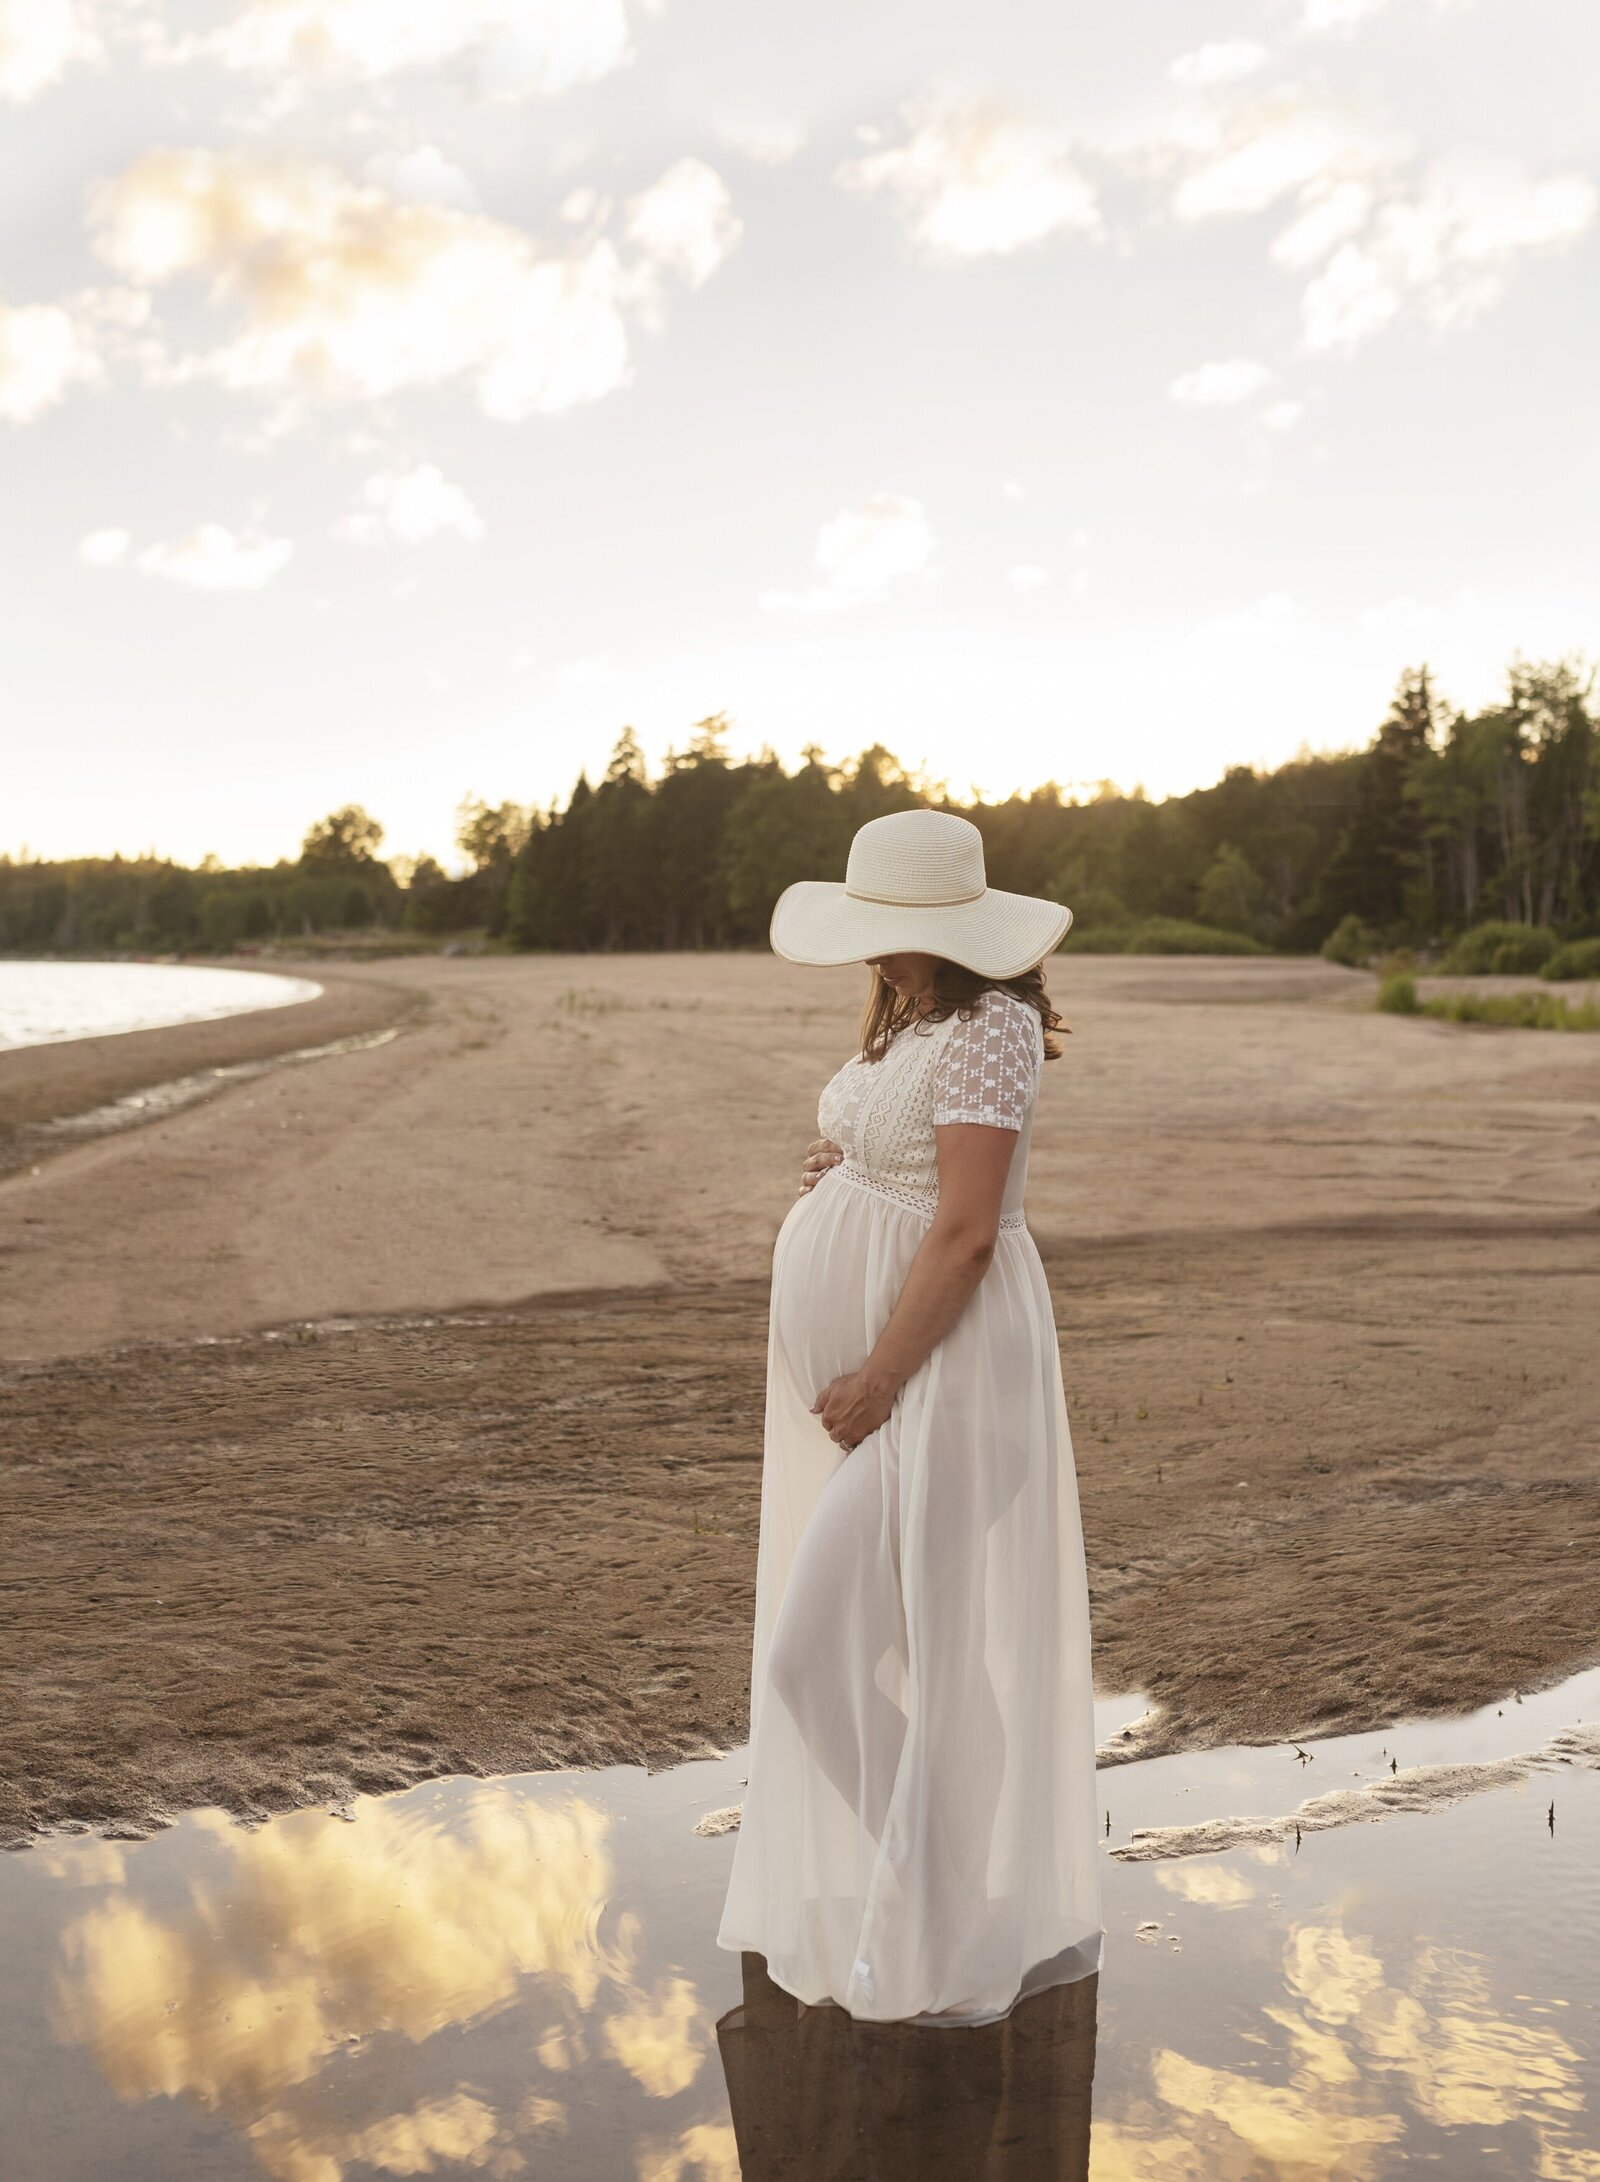 summer maternity pictures at a beach with a woman wearing a large hat